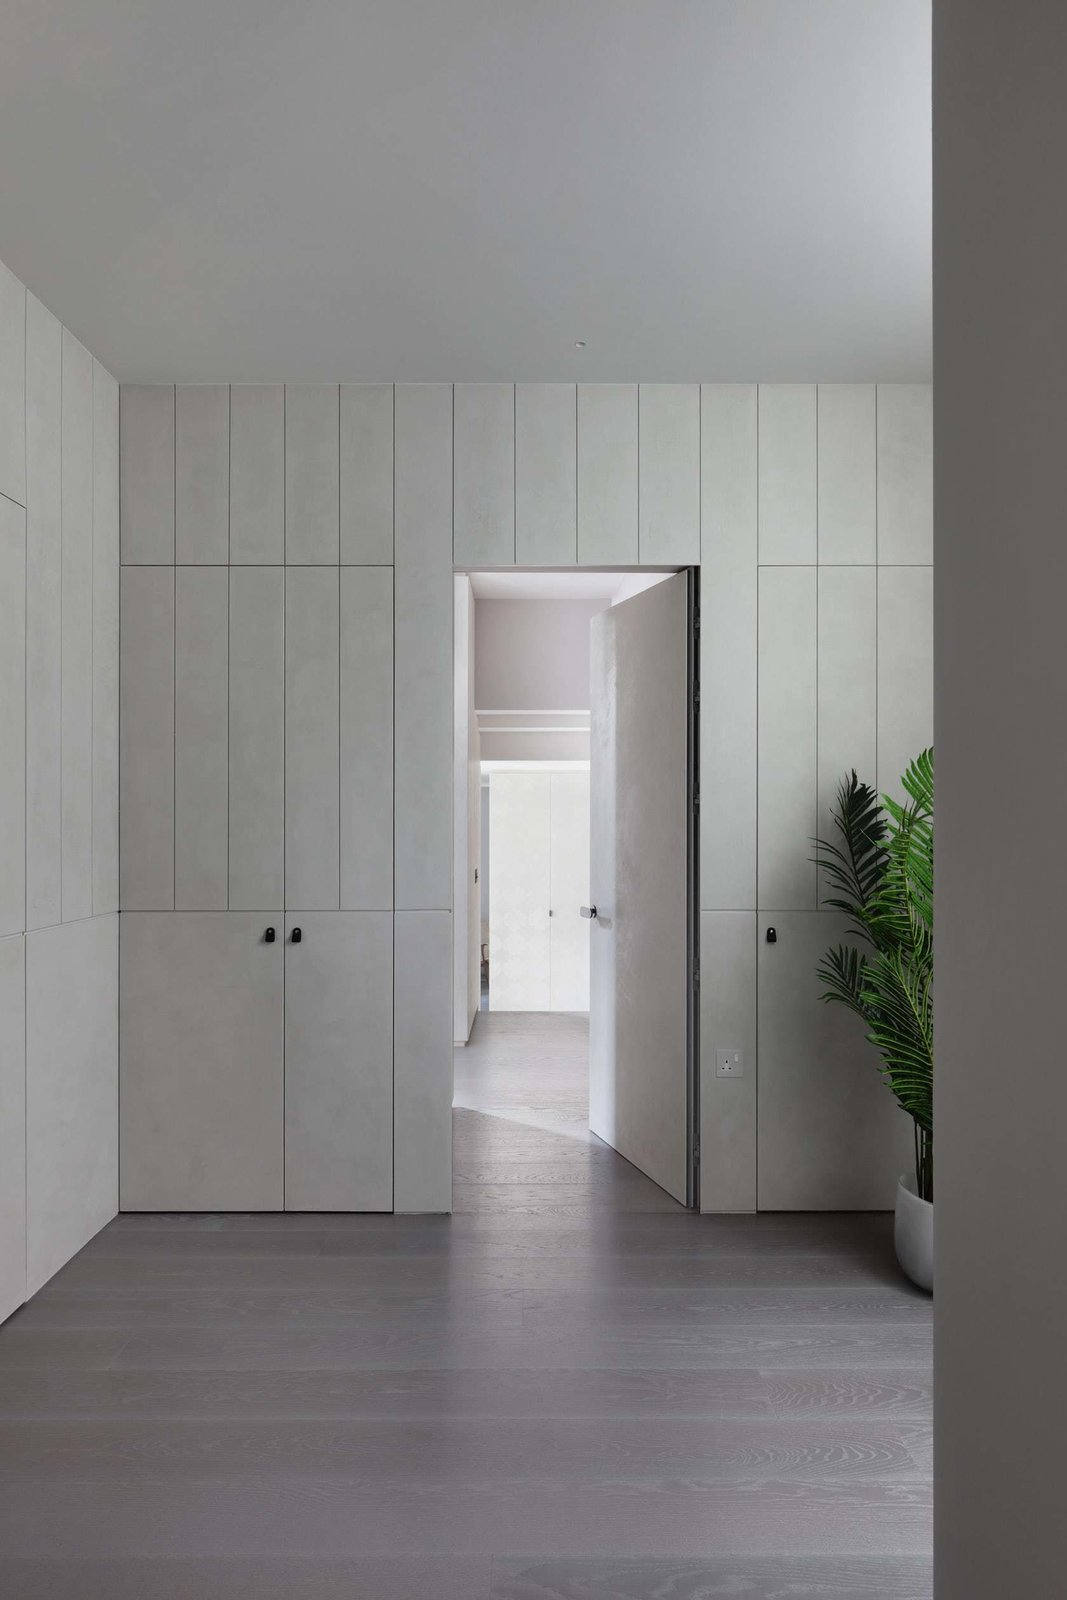 Tagged: Storage Room and Cabinet Storage Type.  Maida Vale Apartment by Leibal